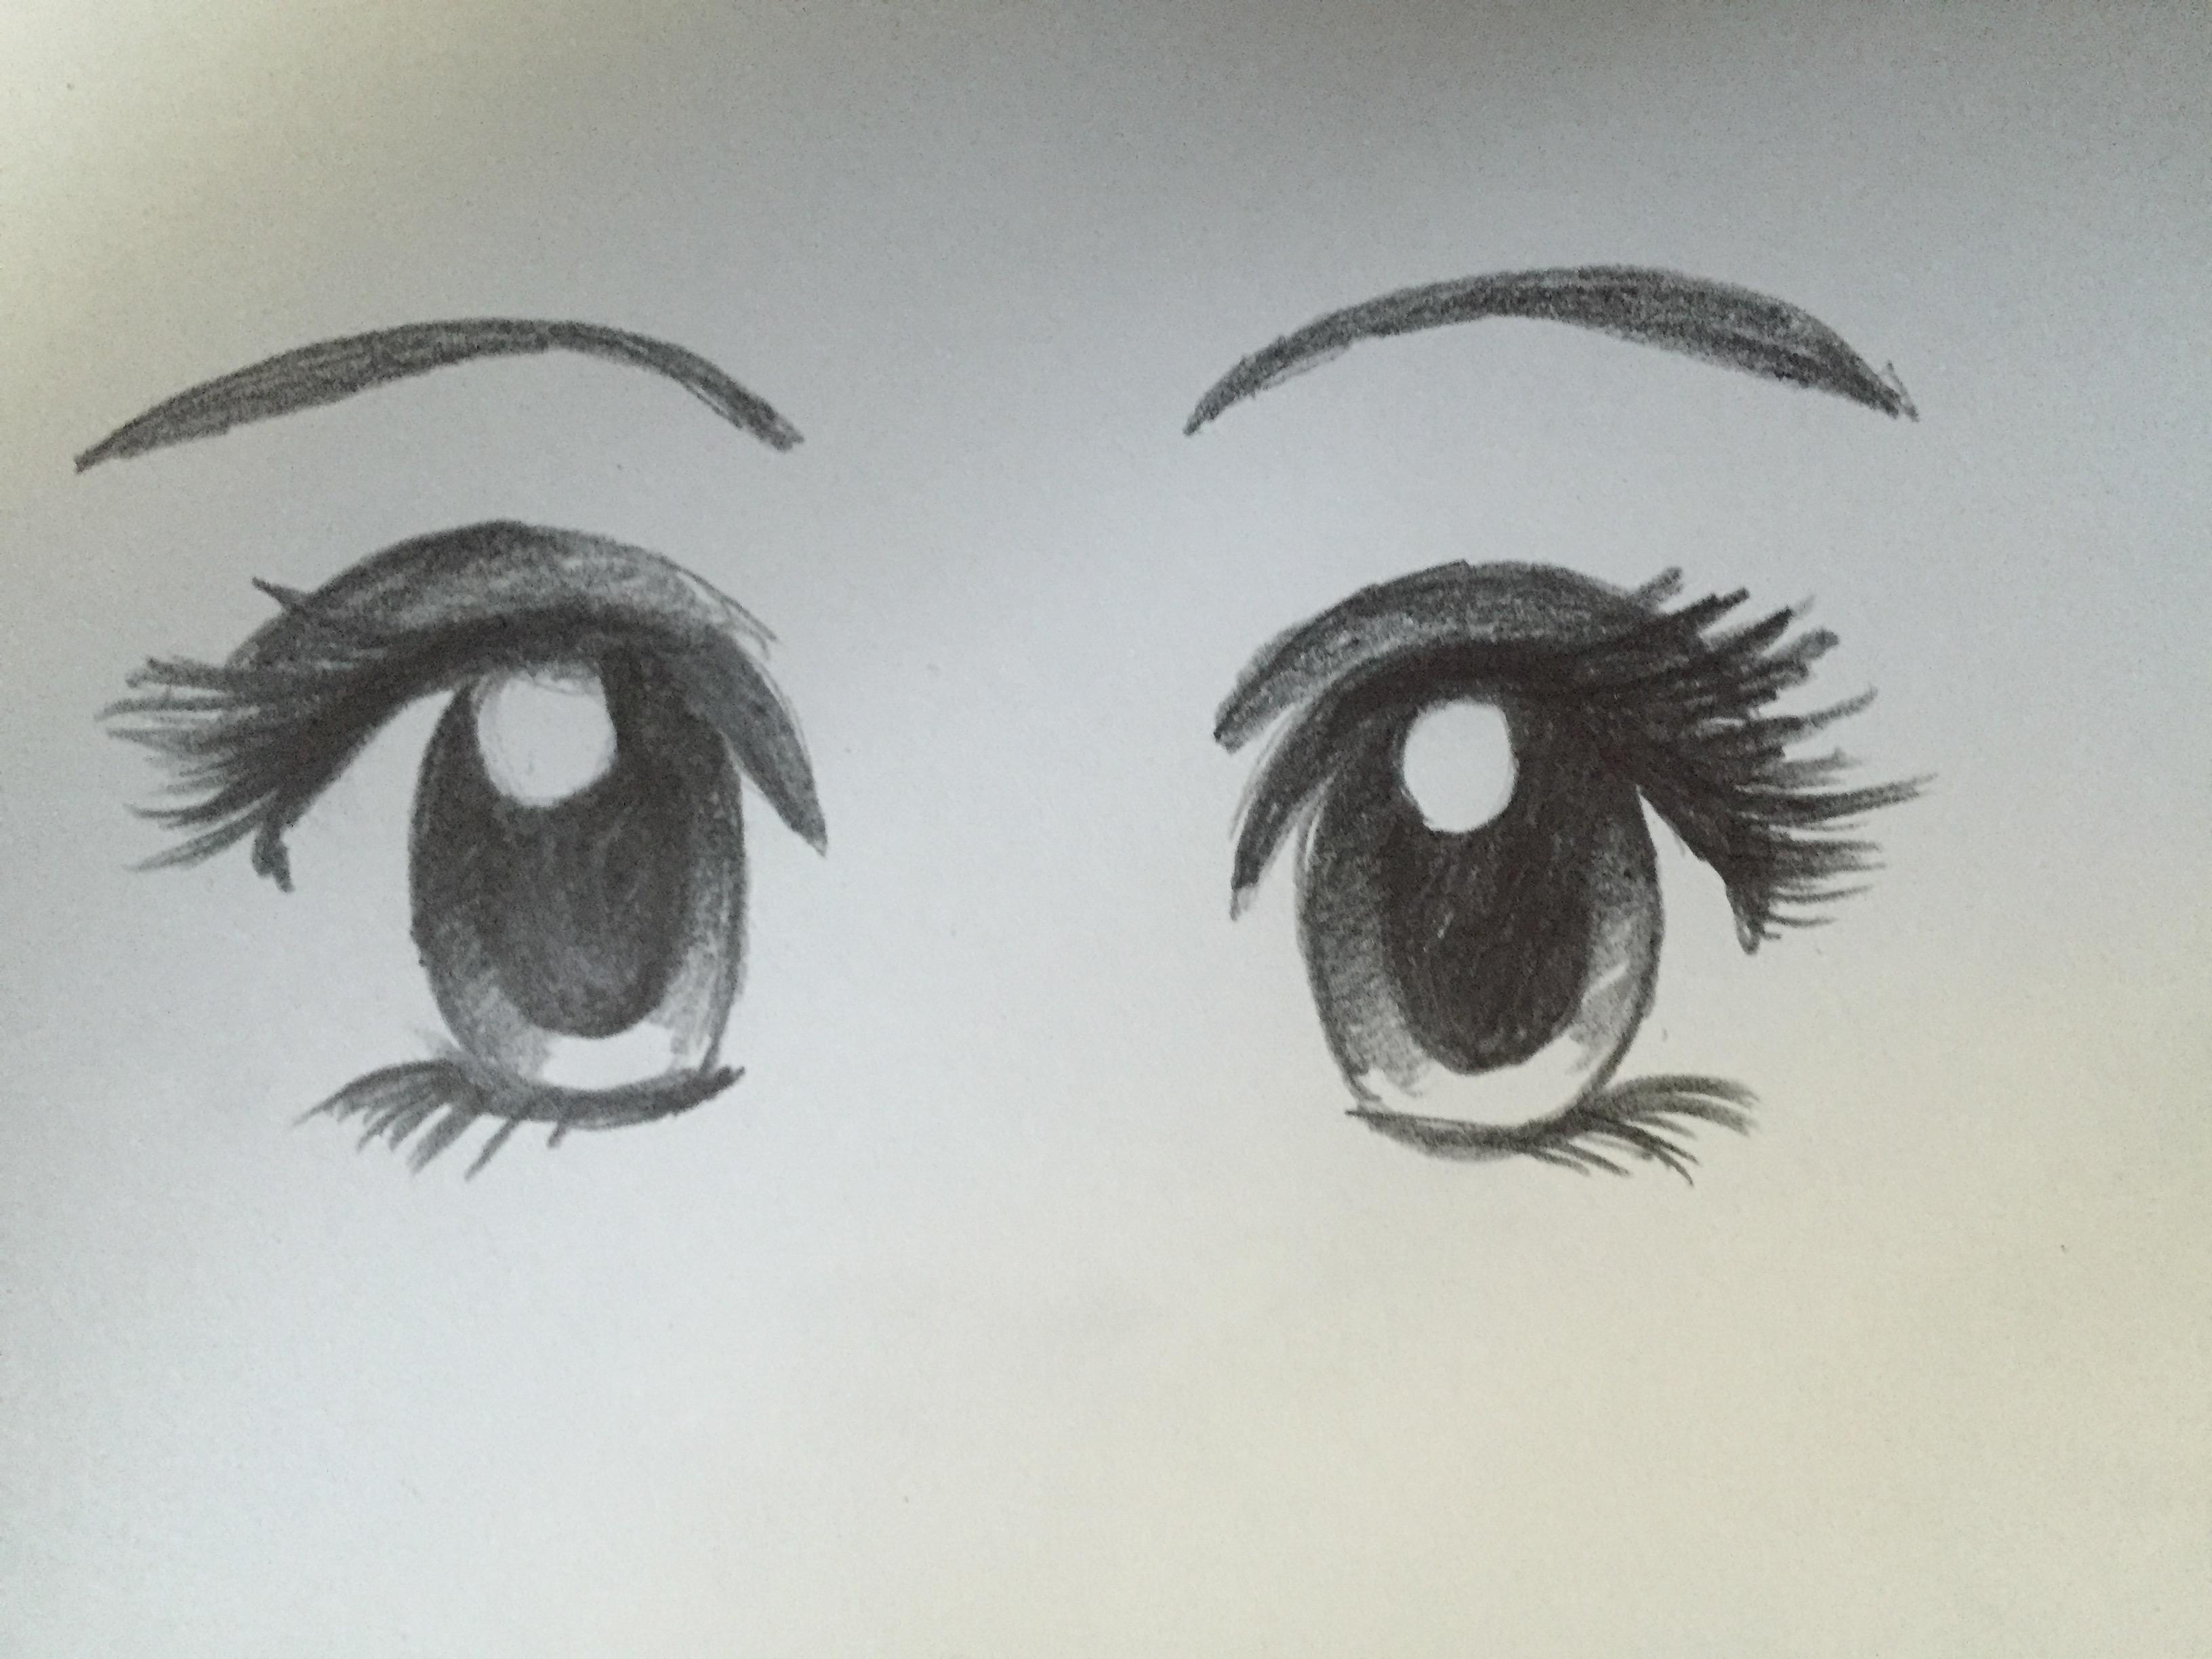 3264x2448 How To Draw Manga Eyes Steemit